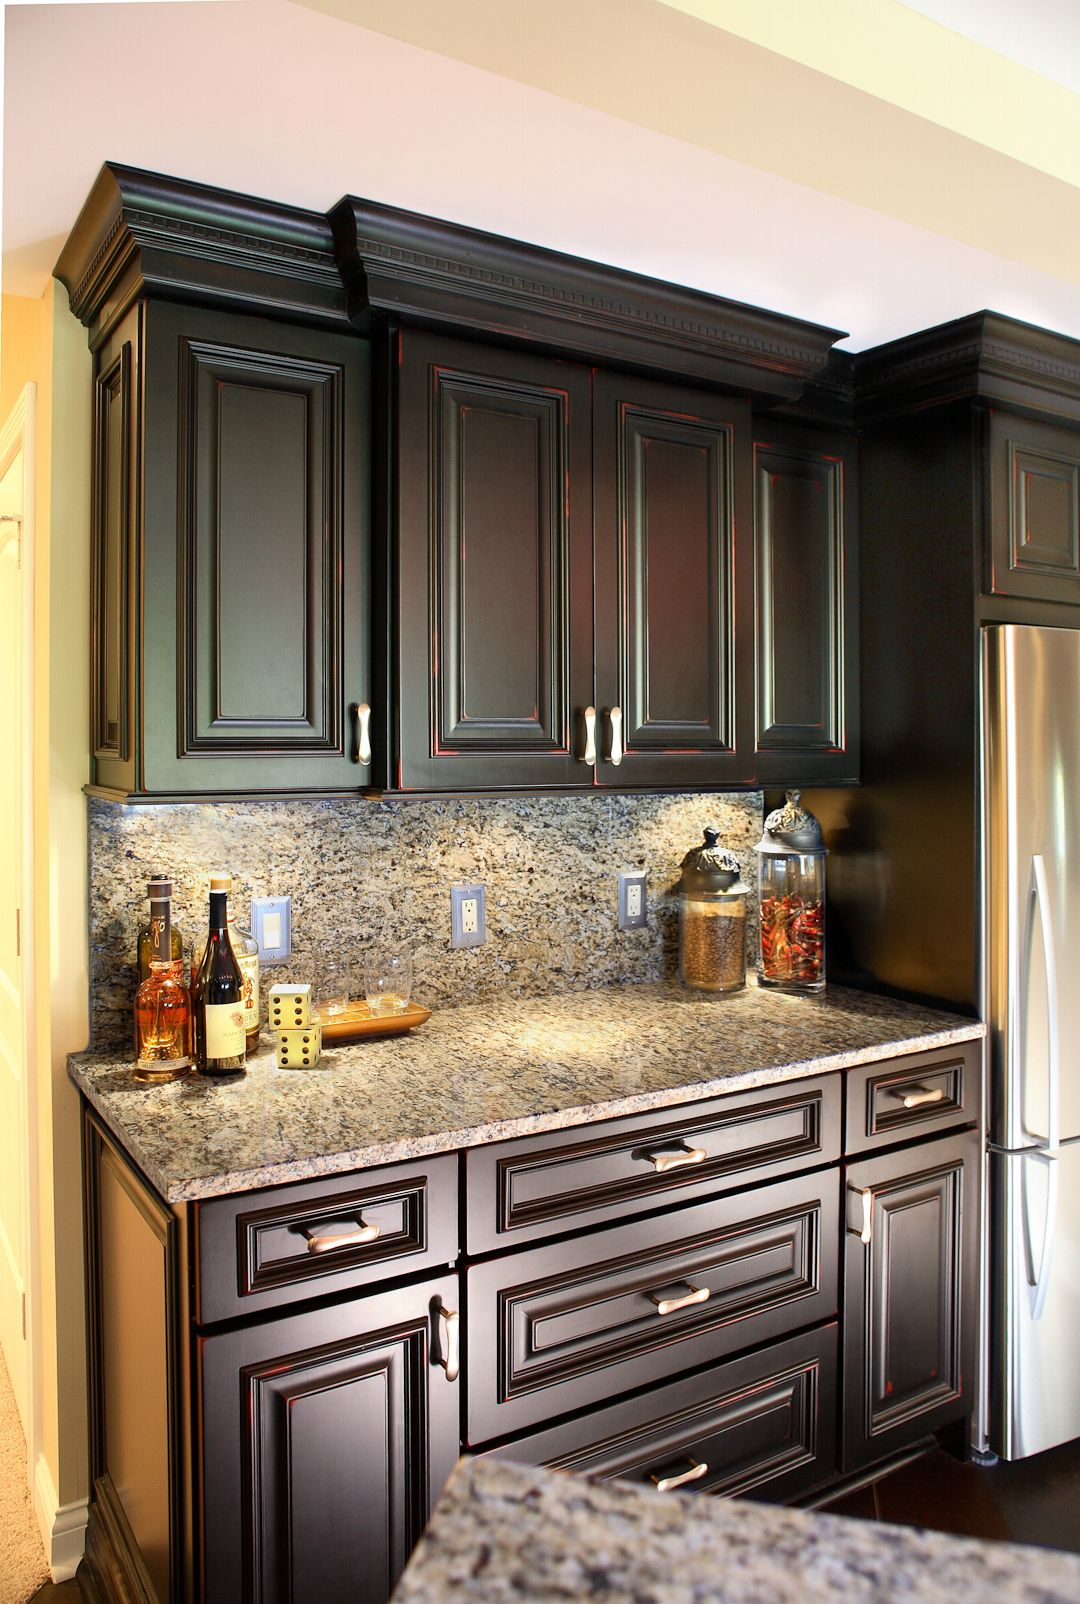 Best Gorgeous Countertops And Backsplash With Lots Of Cabinet 640 x 480